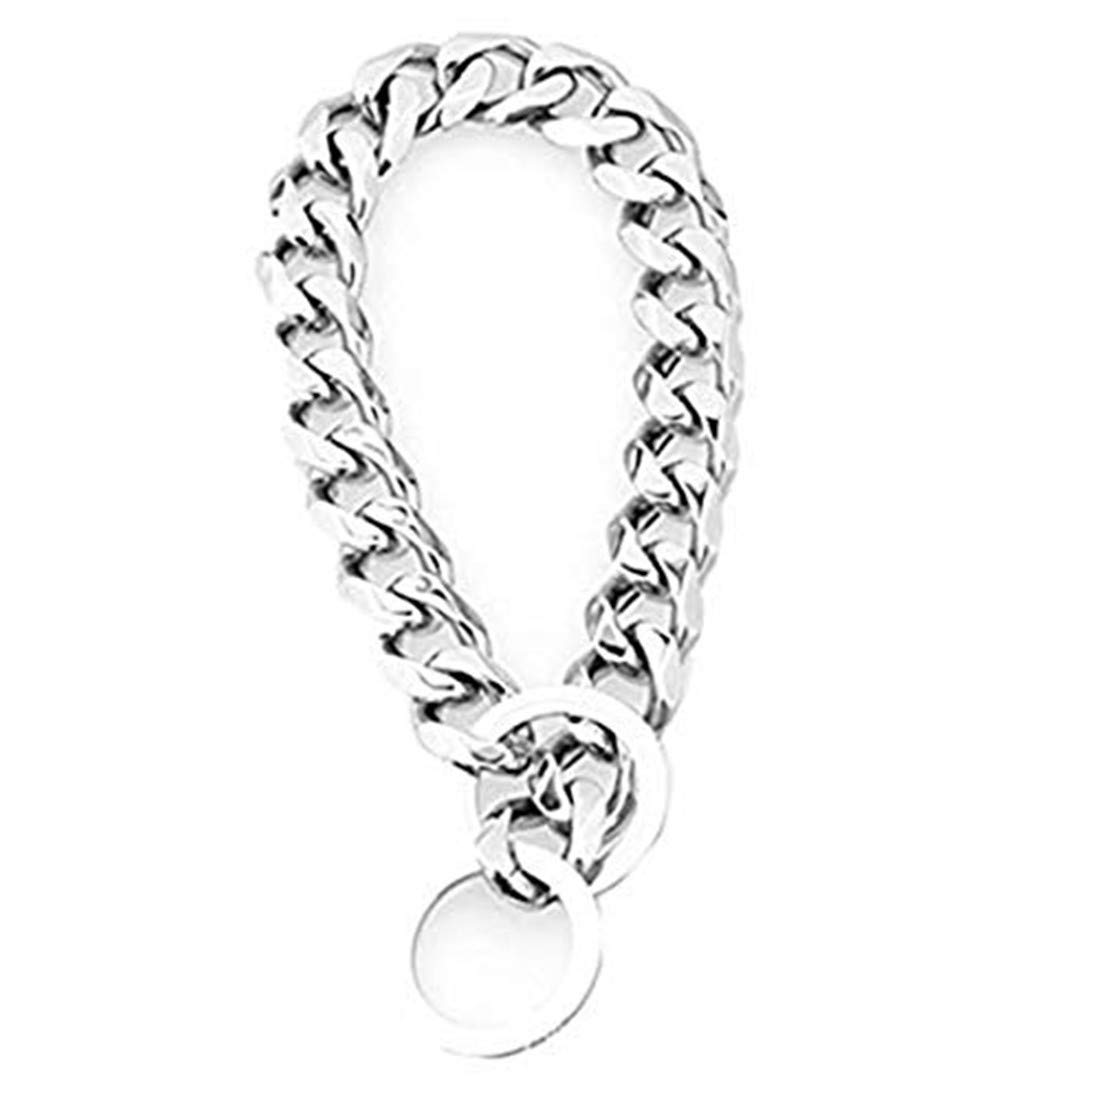 Heavy Metal 19mm Duty Solid Stainless Steel Dog Choke Chain Collar Pet Necklace for Pit Bull, Mastiff, Bulldog, Big Breeds 12 Inches-34 Inches (26inch Chain(Suggest Dog Neck 22inch))